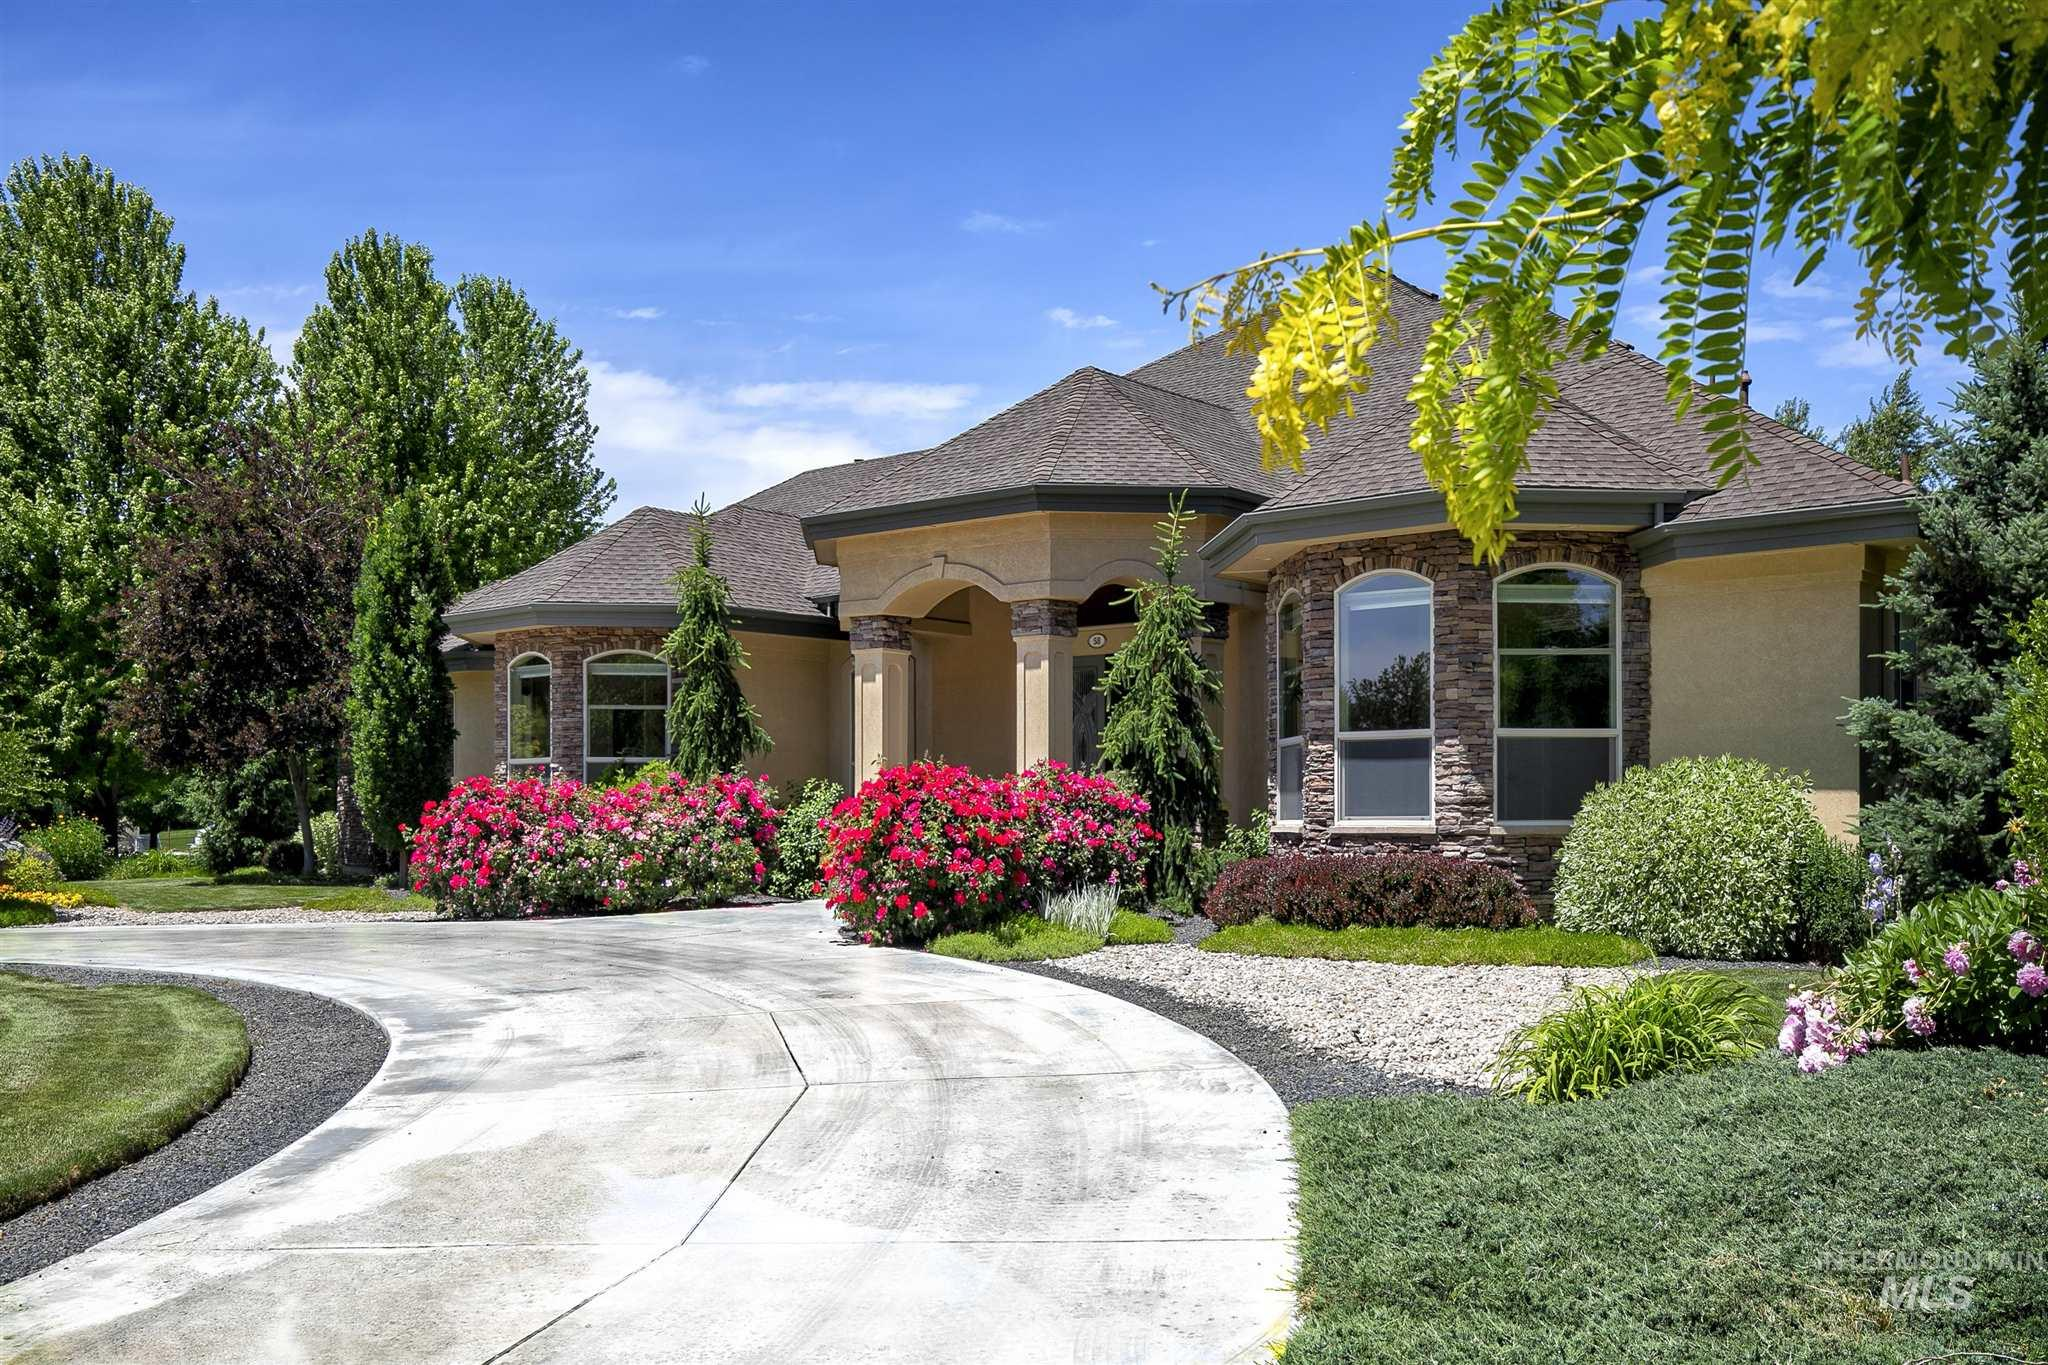 58 W Sutter Dr, Eagle, ID 83616